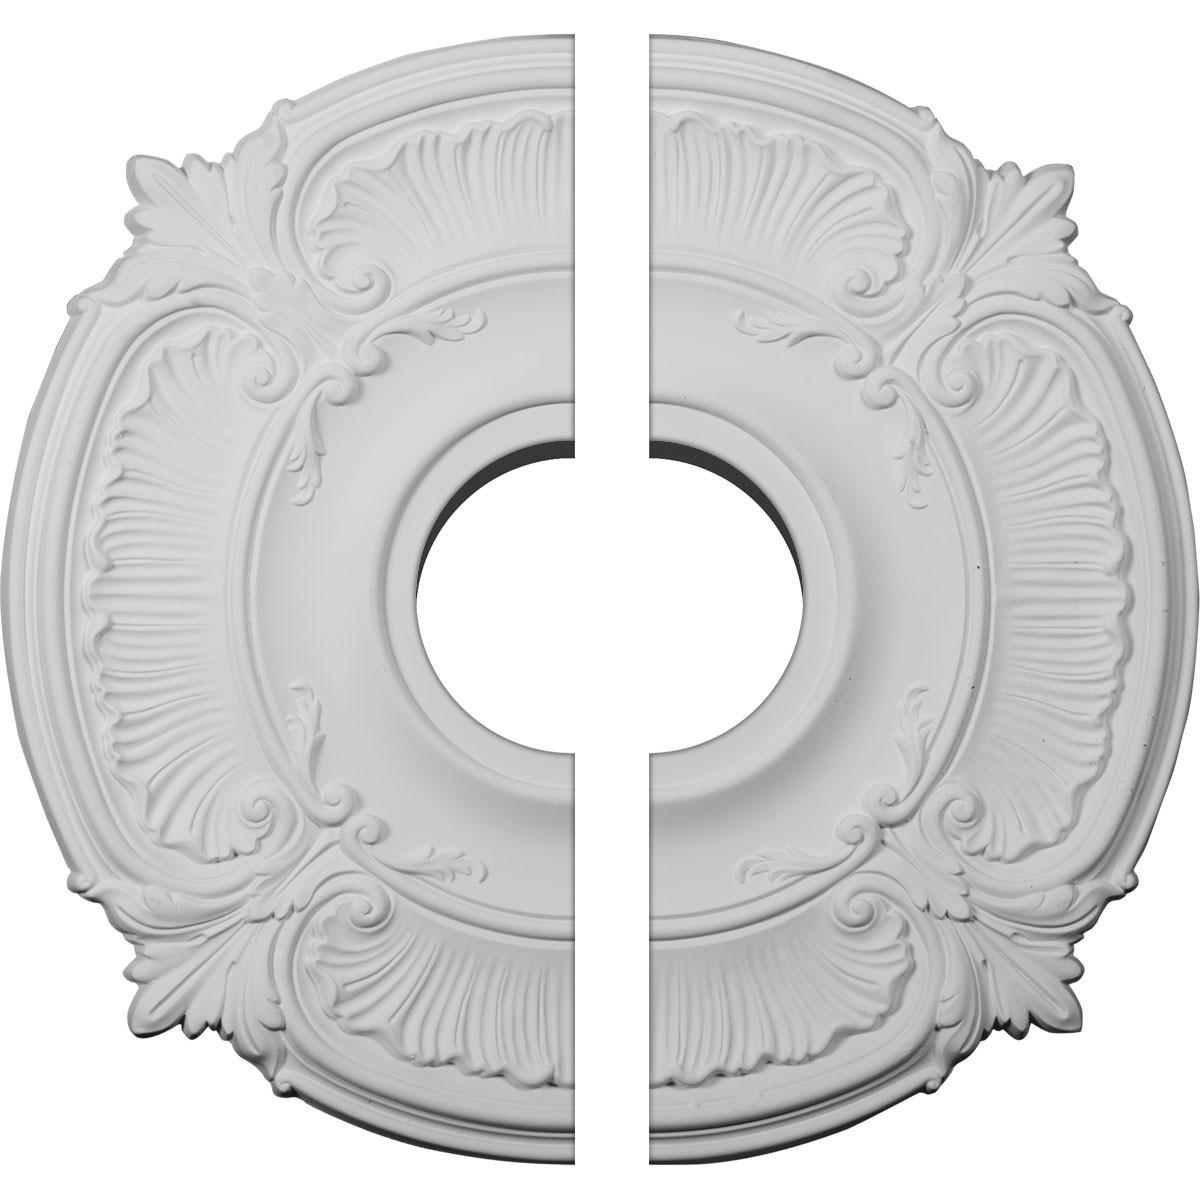 """EM-CM18AT2 - 18""""OD x 4""""ID x 5/8""""P Attica Ceiling Medallion, Two Piece (Fits Canopies up to 5"""")"""